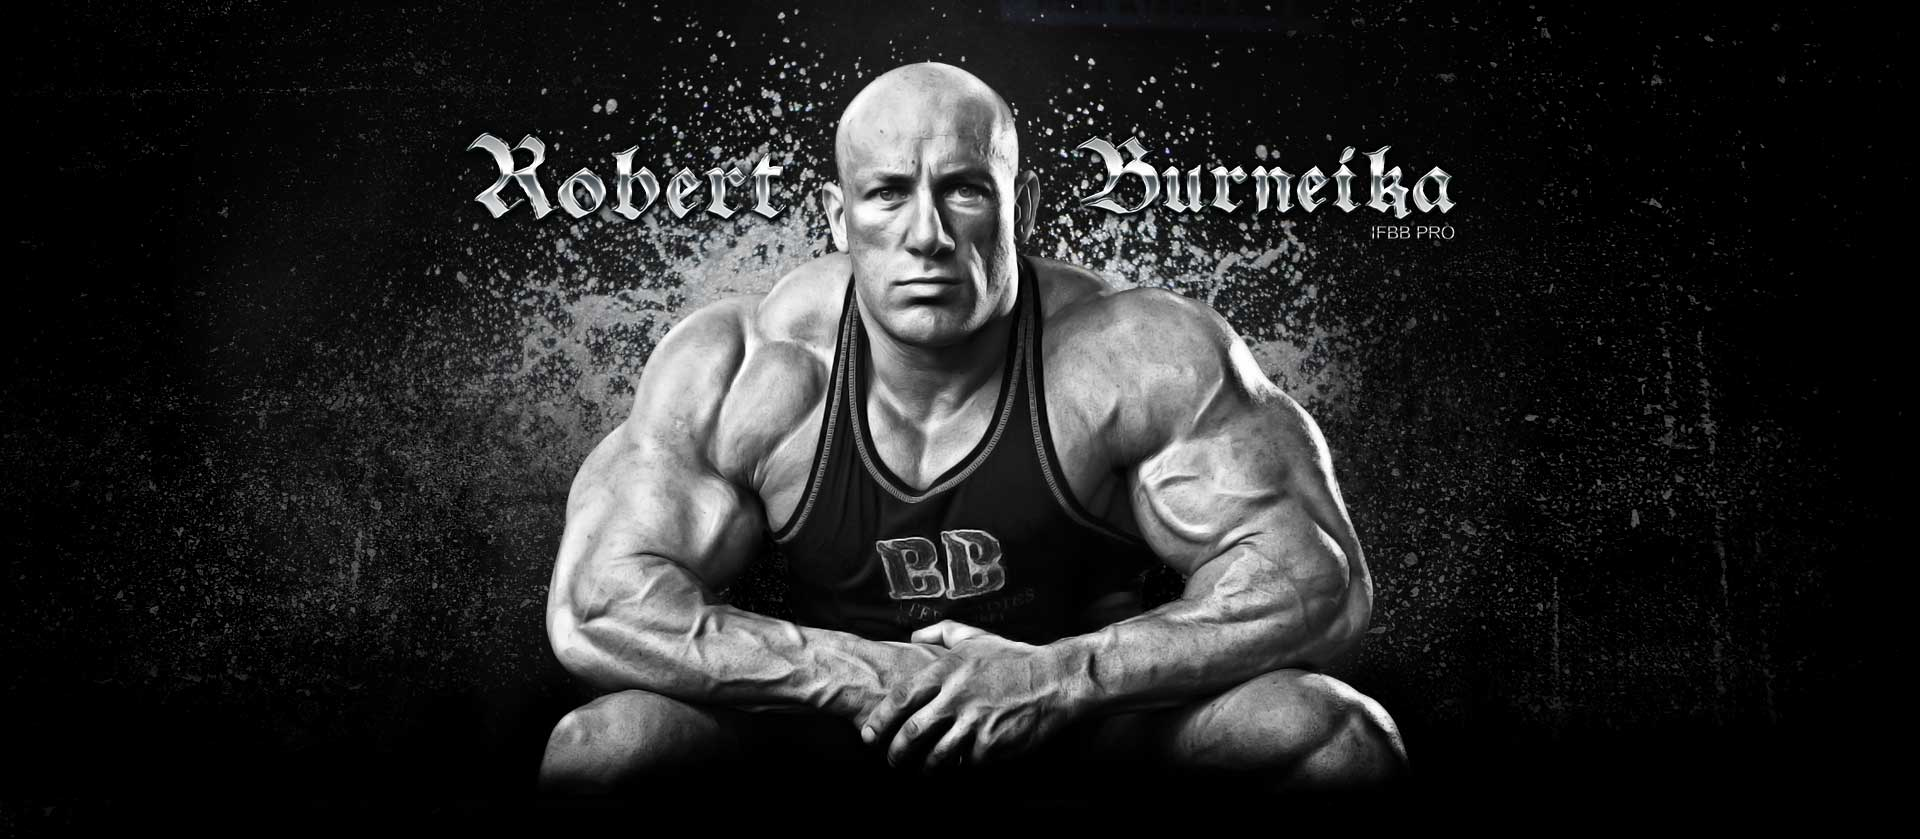 Bodybuilder Robert Burneika